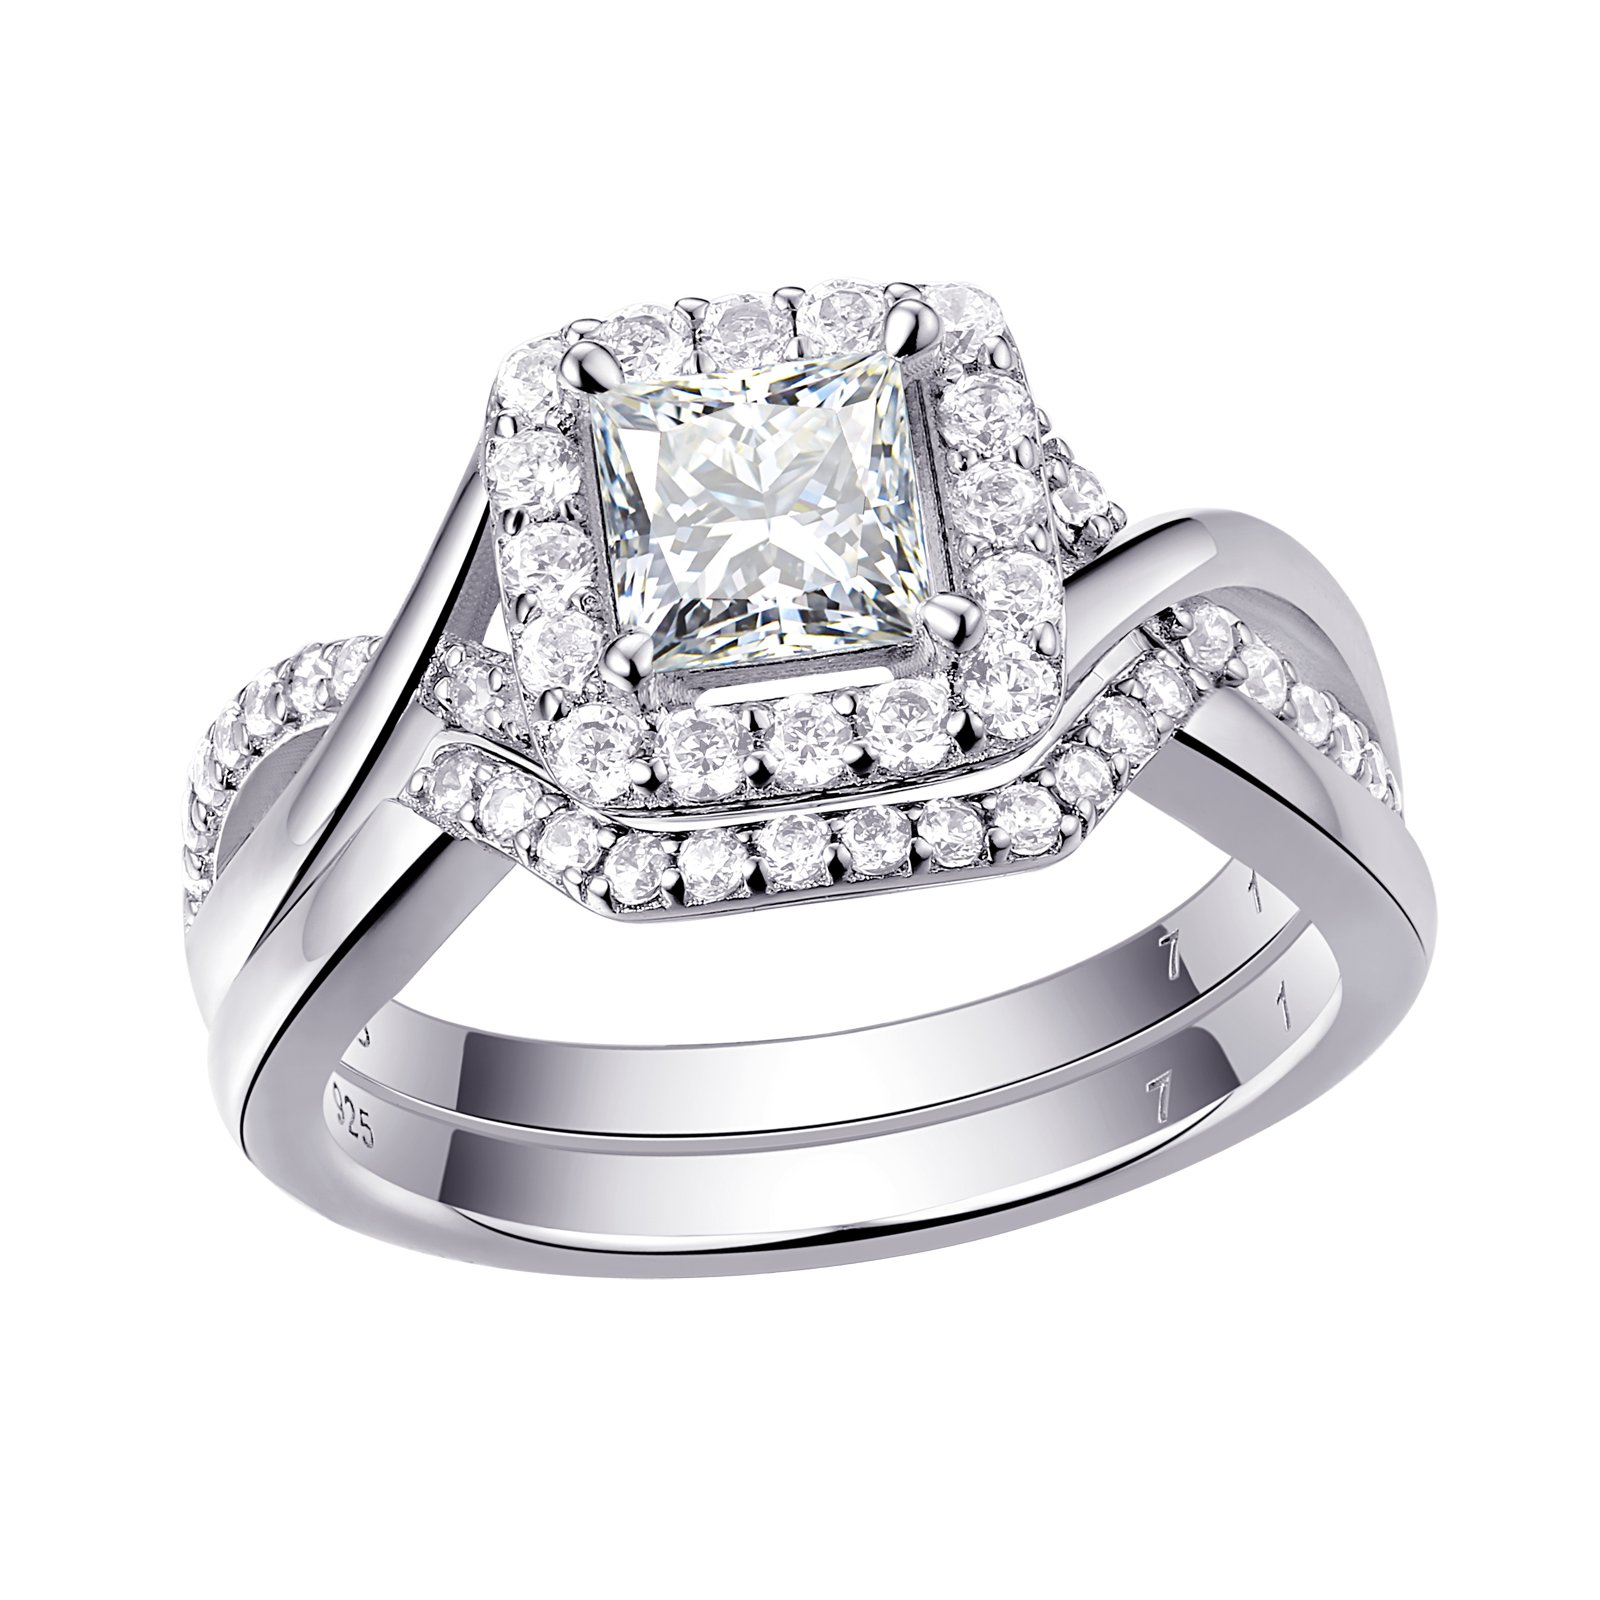 Newshe Engagement Wedding Ring For Women Bridal Set 925 Sterling Silver Princess White AAA Cz Size 7